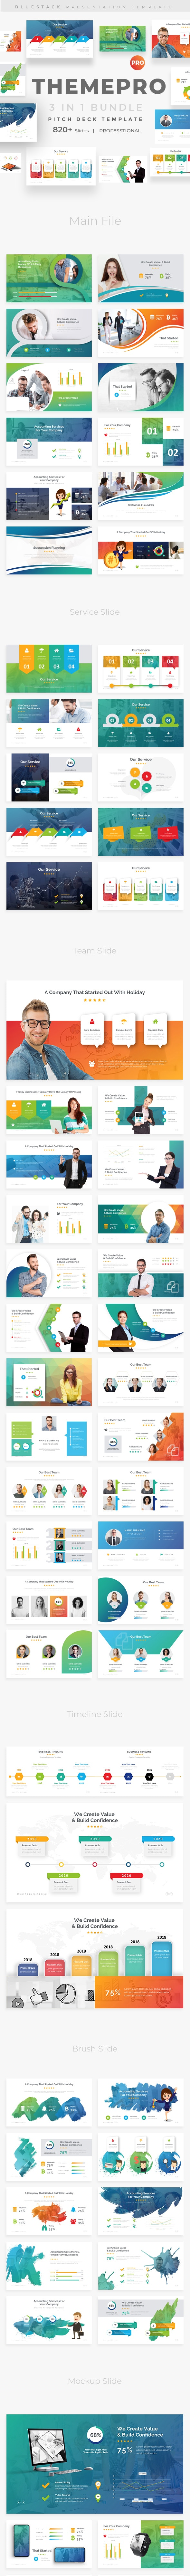 3 in 1 Themepro Pitch Deck  Bundle Powerpoint Template - Creative PowerPoint Templates